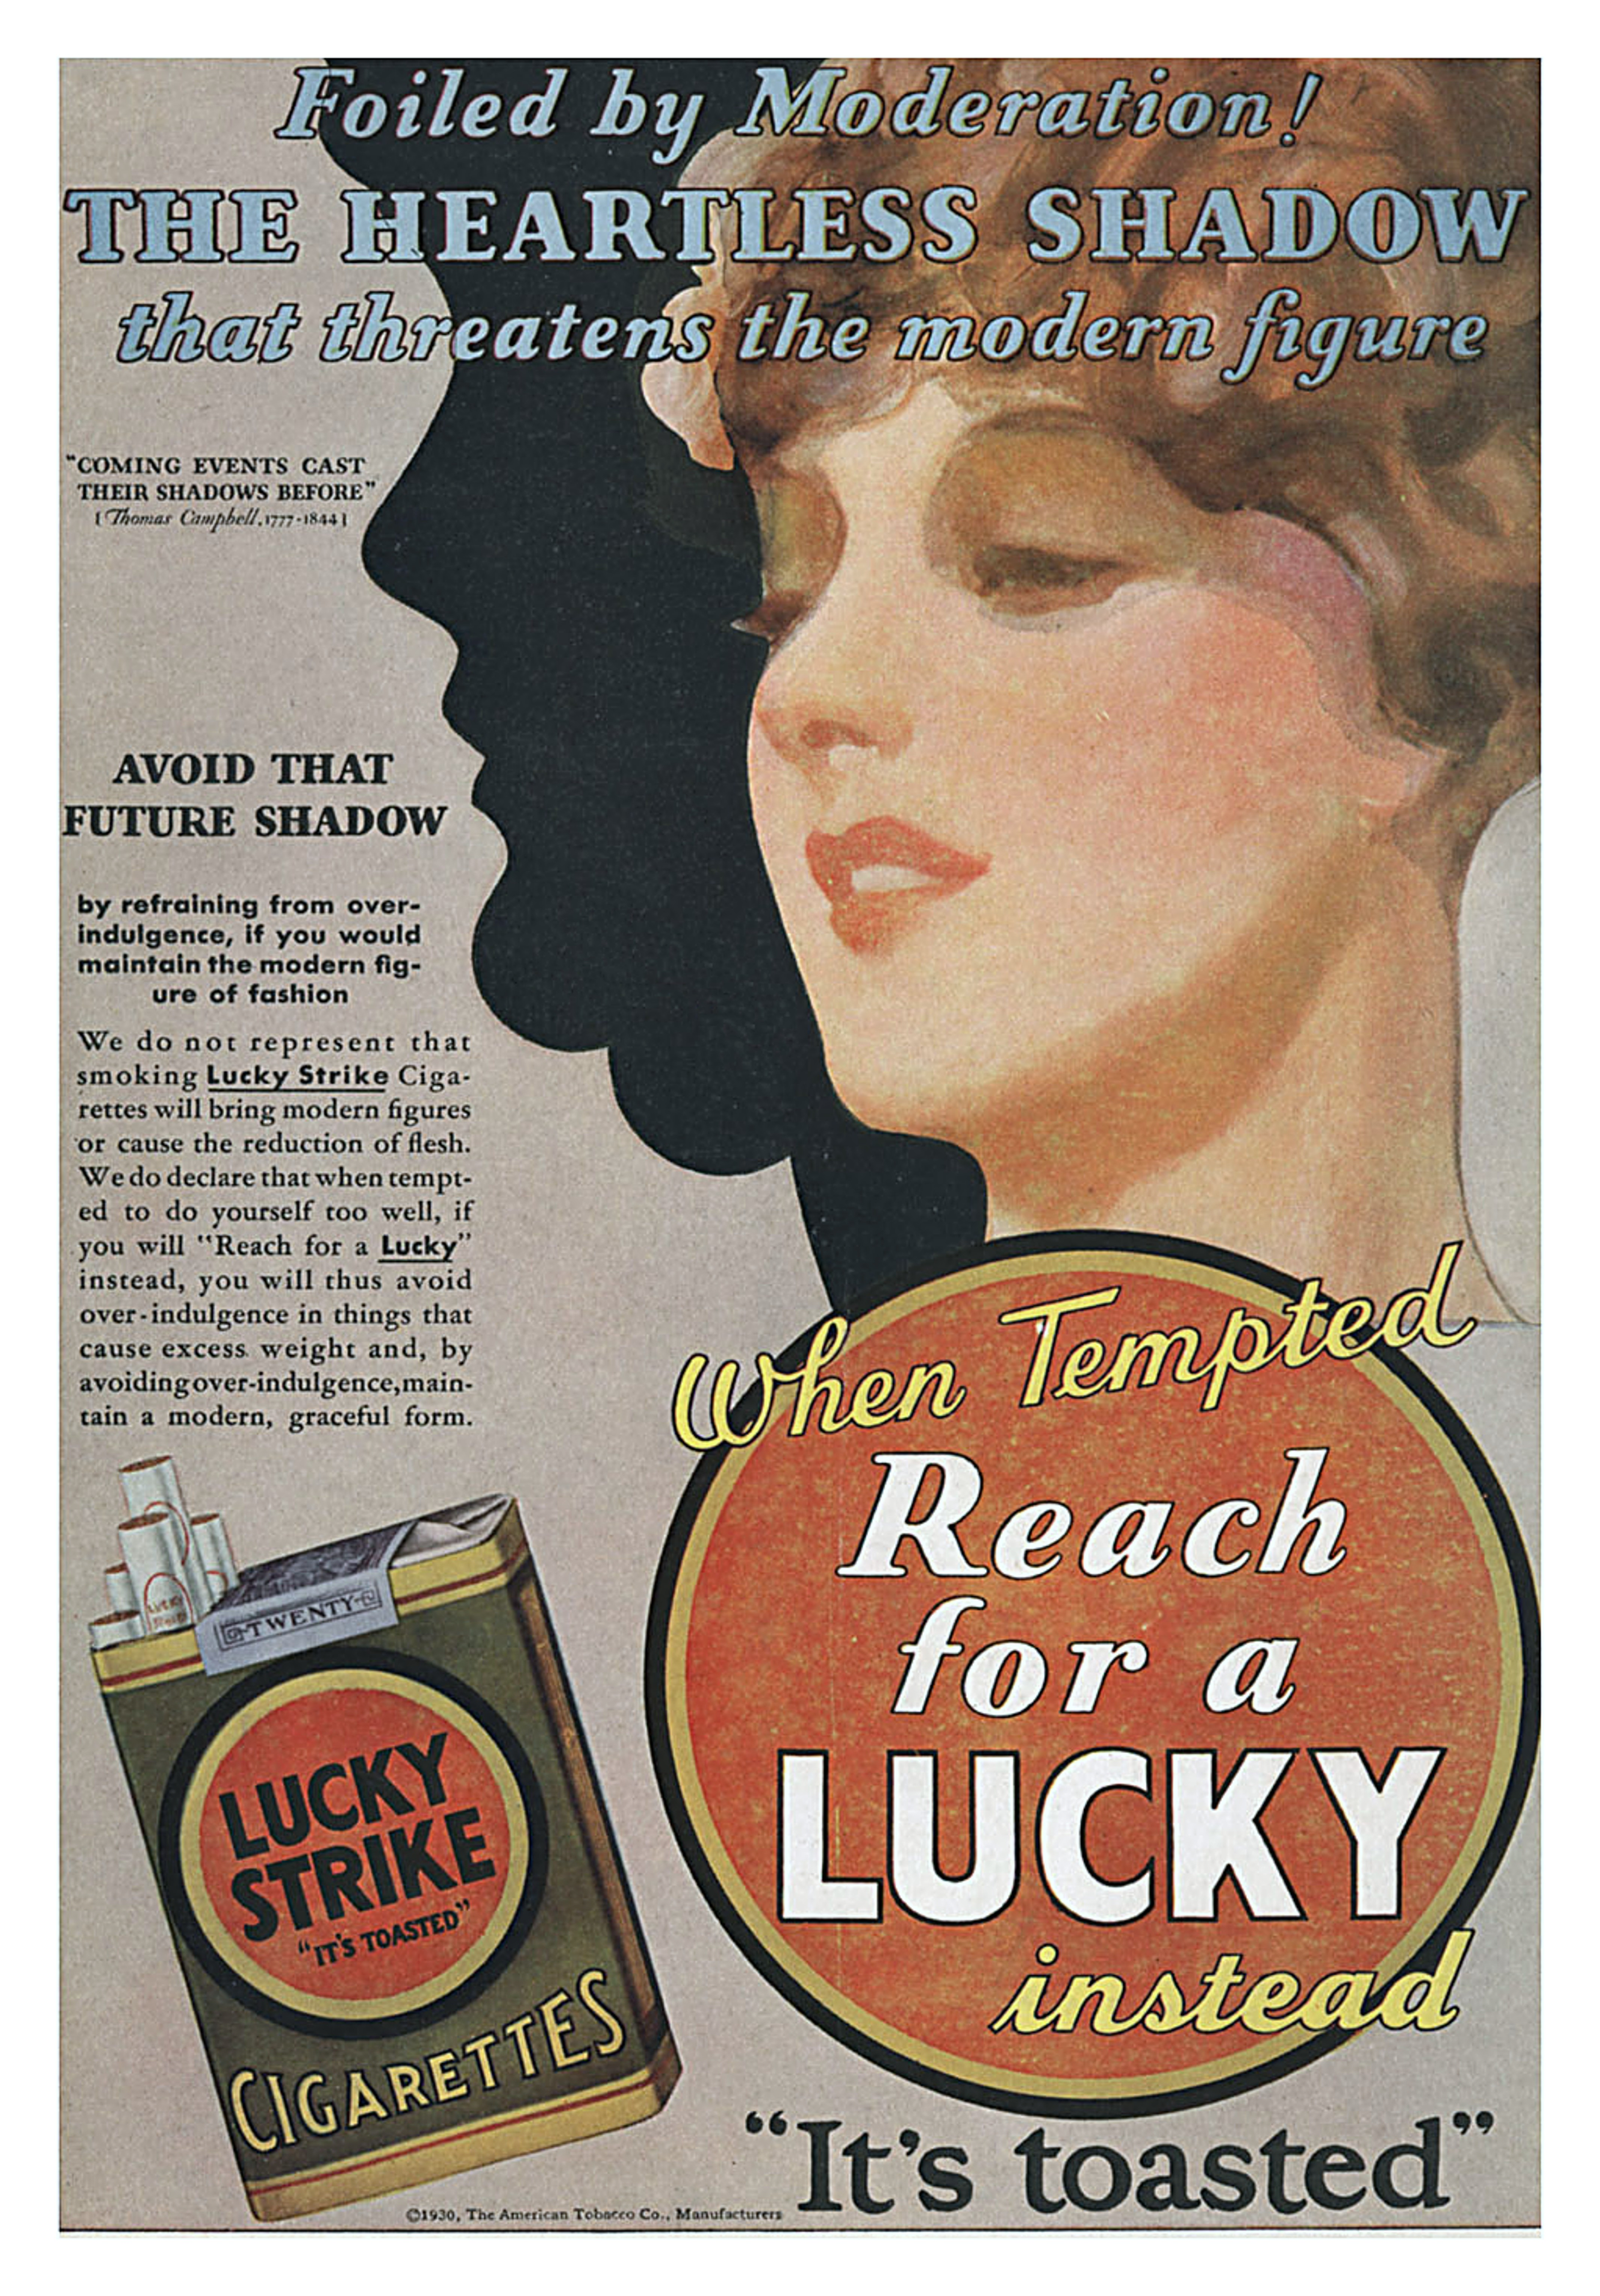 Lucky Strike Cigarettes - 1930